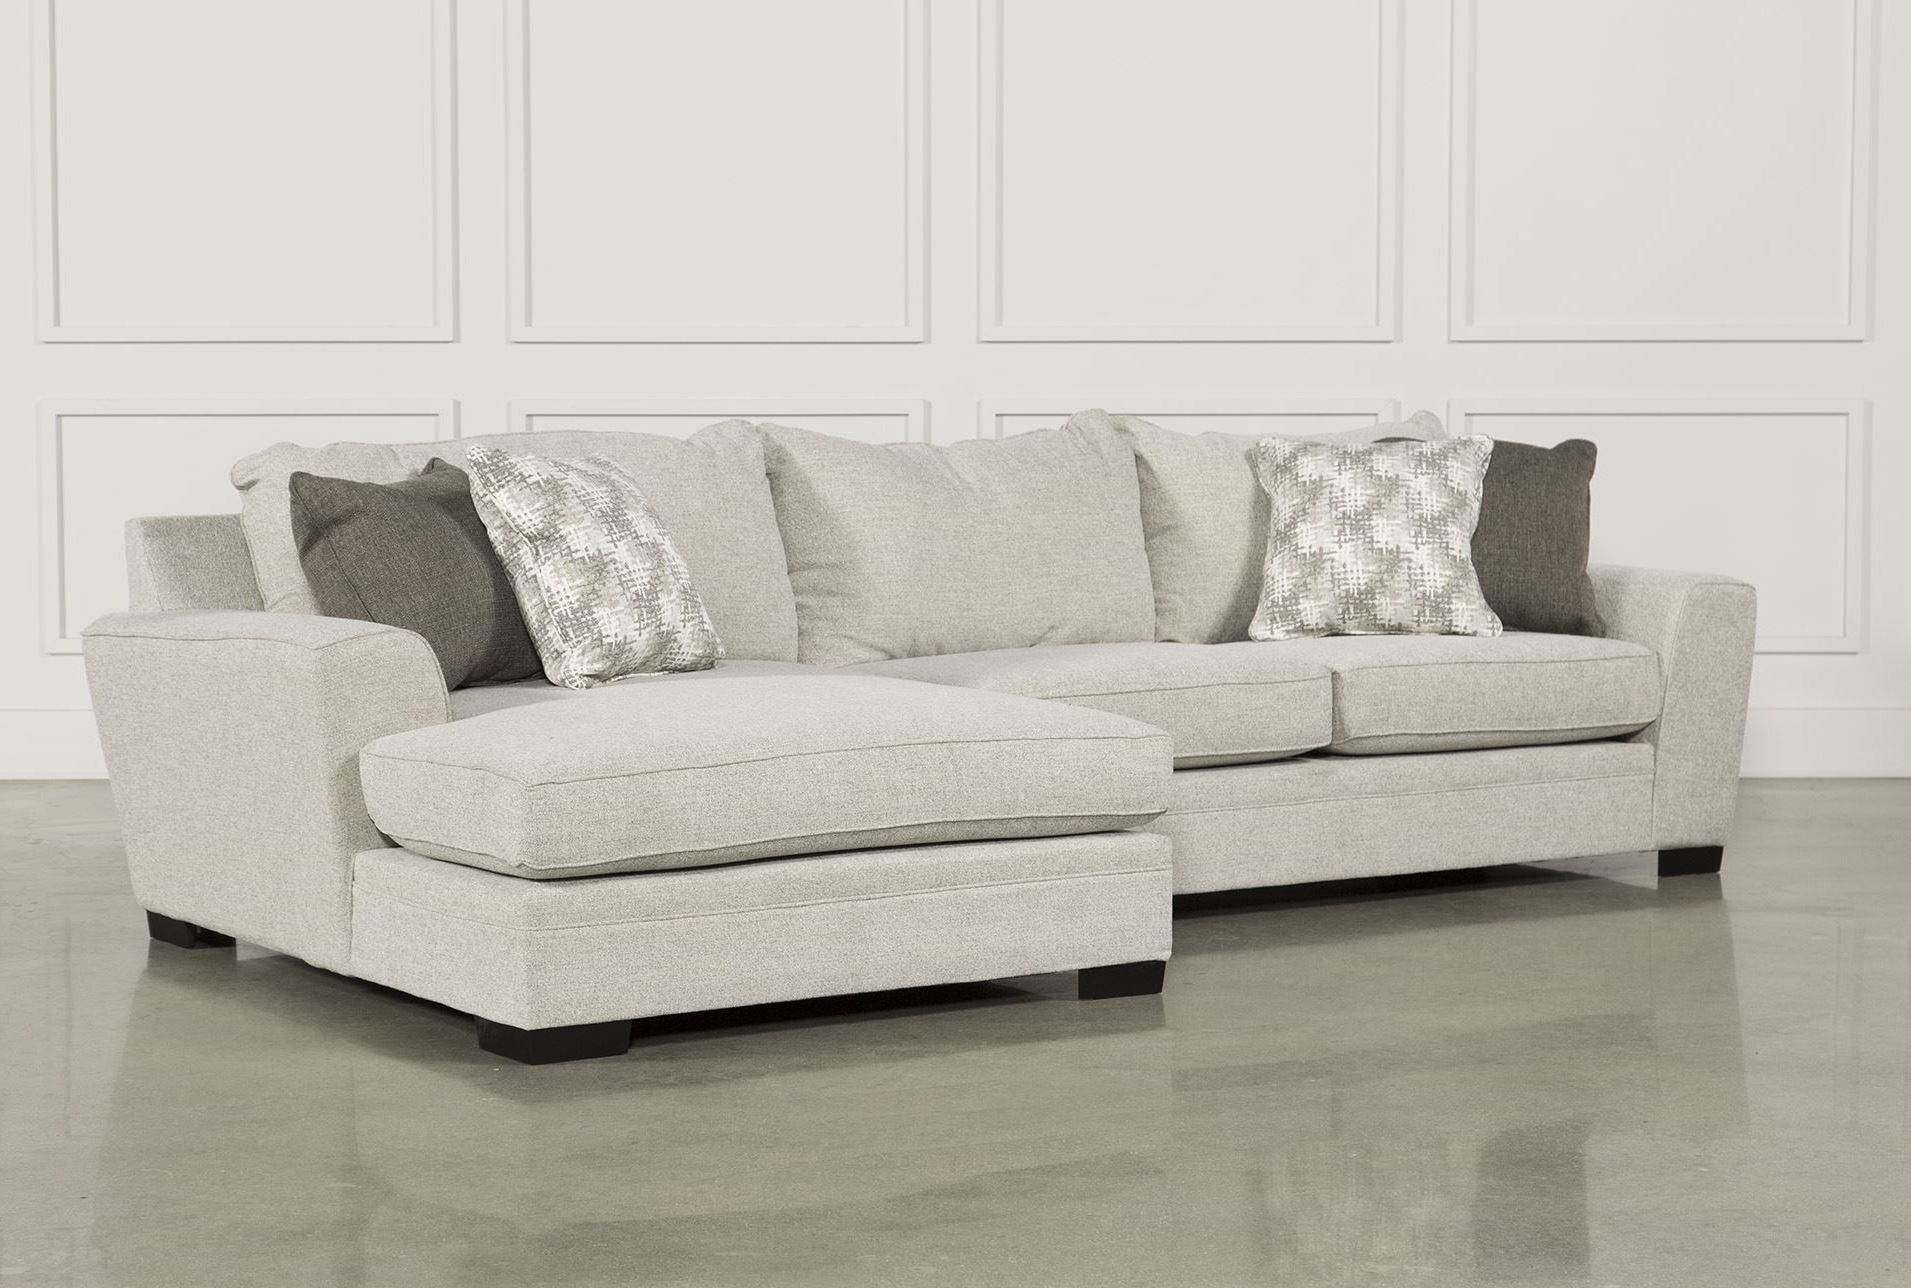 Delano 2 Piece Sectional W/raf Oversized Chaise, Beige, Sofas Intended For Recent Delano Smoke 3 Piece Sectionals (View 4 of 20)